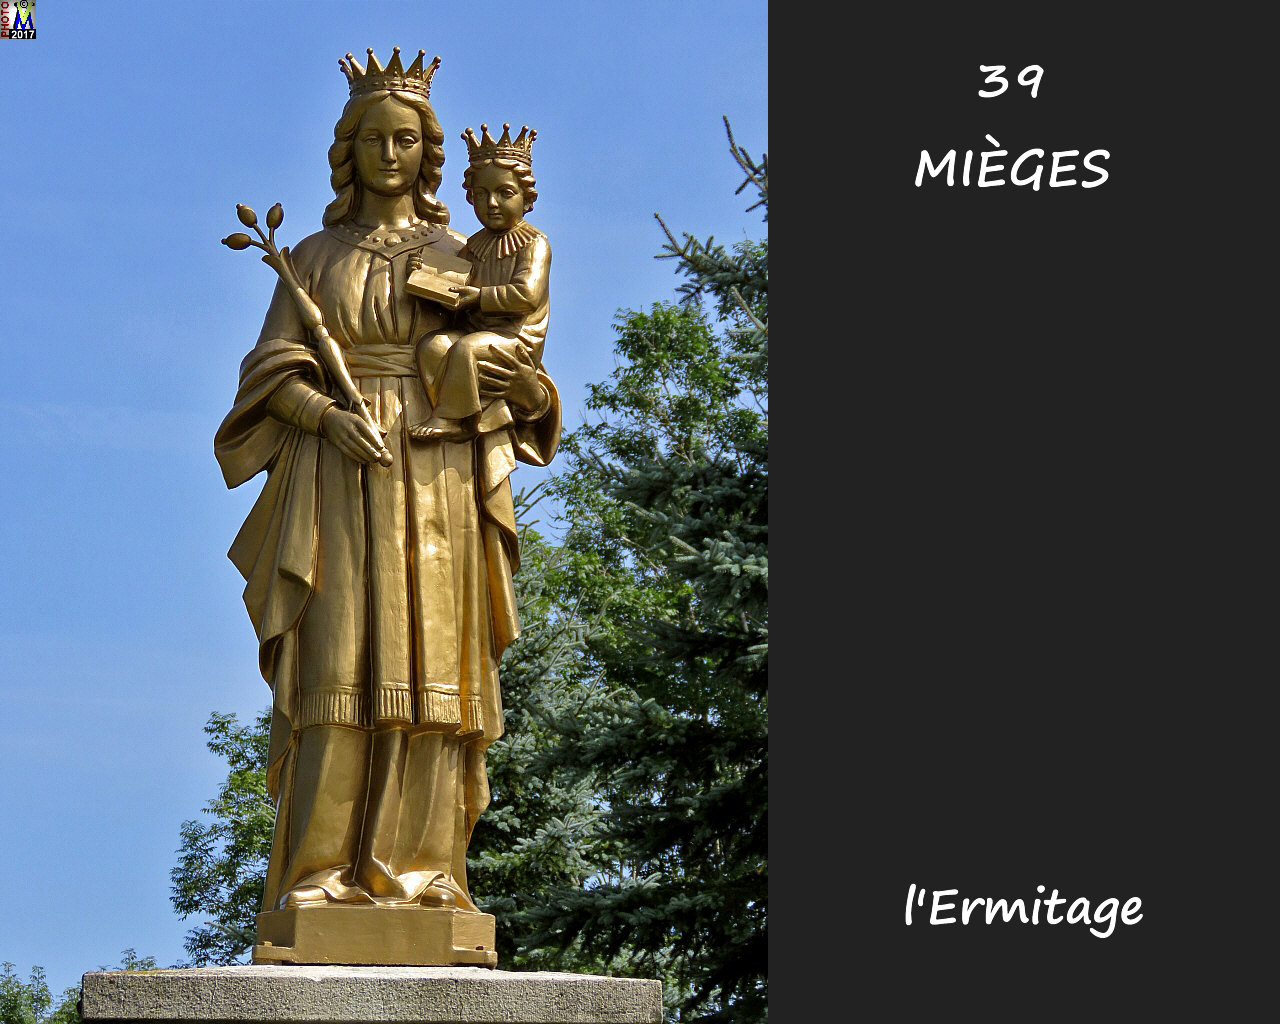 39MIEGES_Ermitage_152.jpg